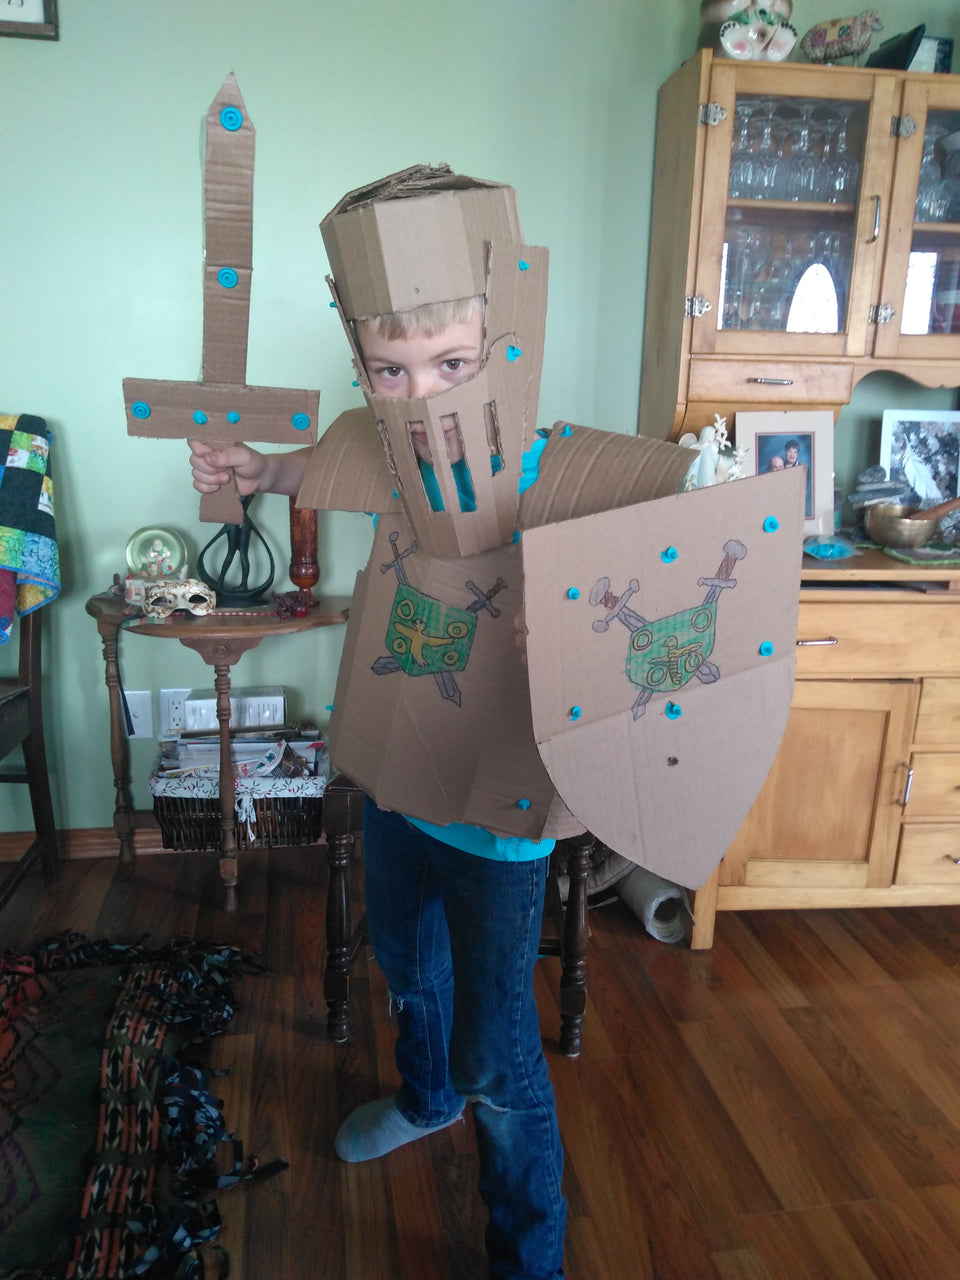 Cardboard knight armor costume made using Makedo